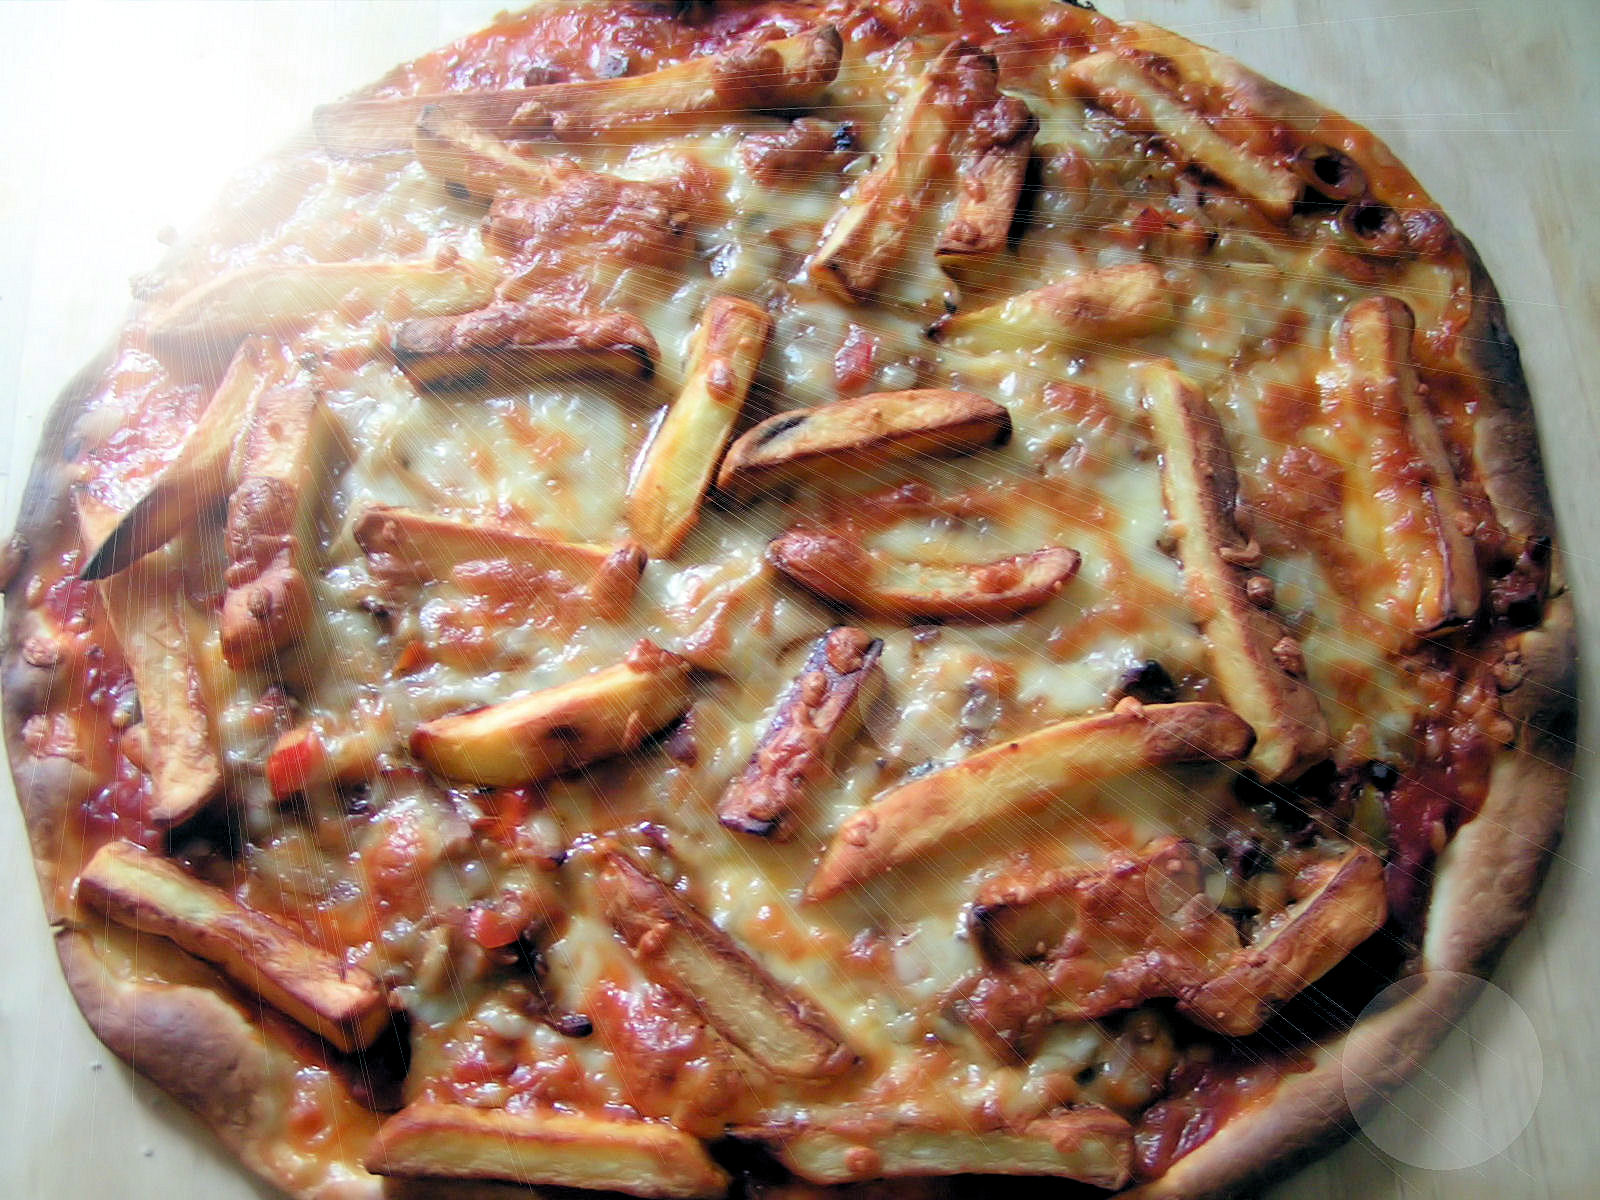 lahmahjoon an armenian pizza lahmahjoon armenian pizza armenian pizza ...